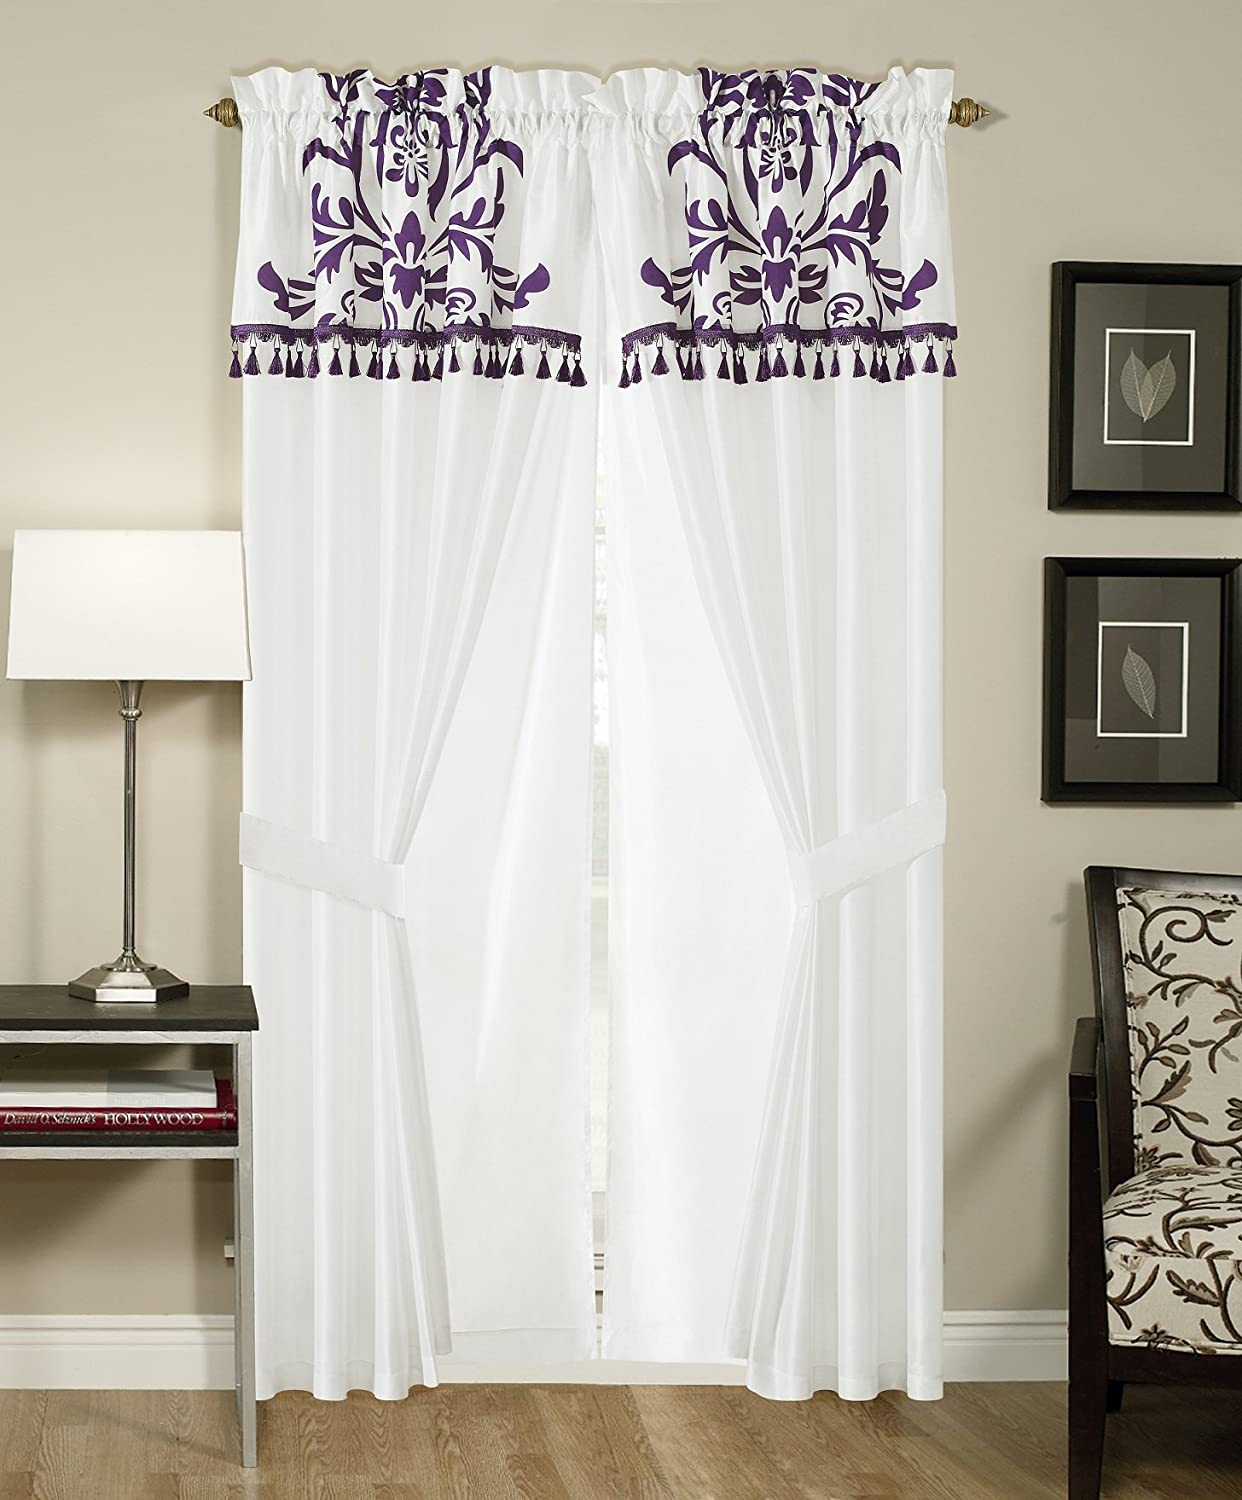 Amazon.com: Chezmoi Collection 2 Panel Purple And White Floral Window  Curtain/ Drape Set, With Valance Treatment Draperies: Home U0026 Kitchen